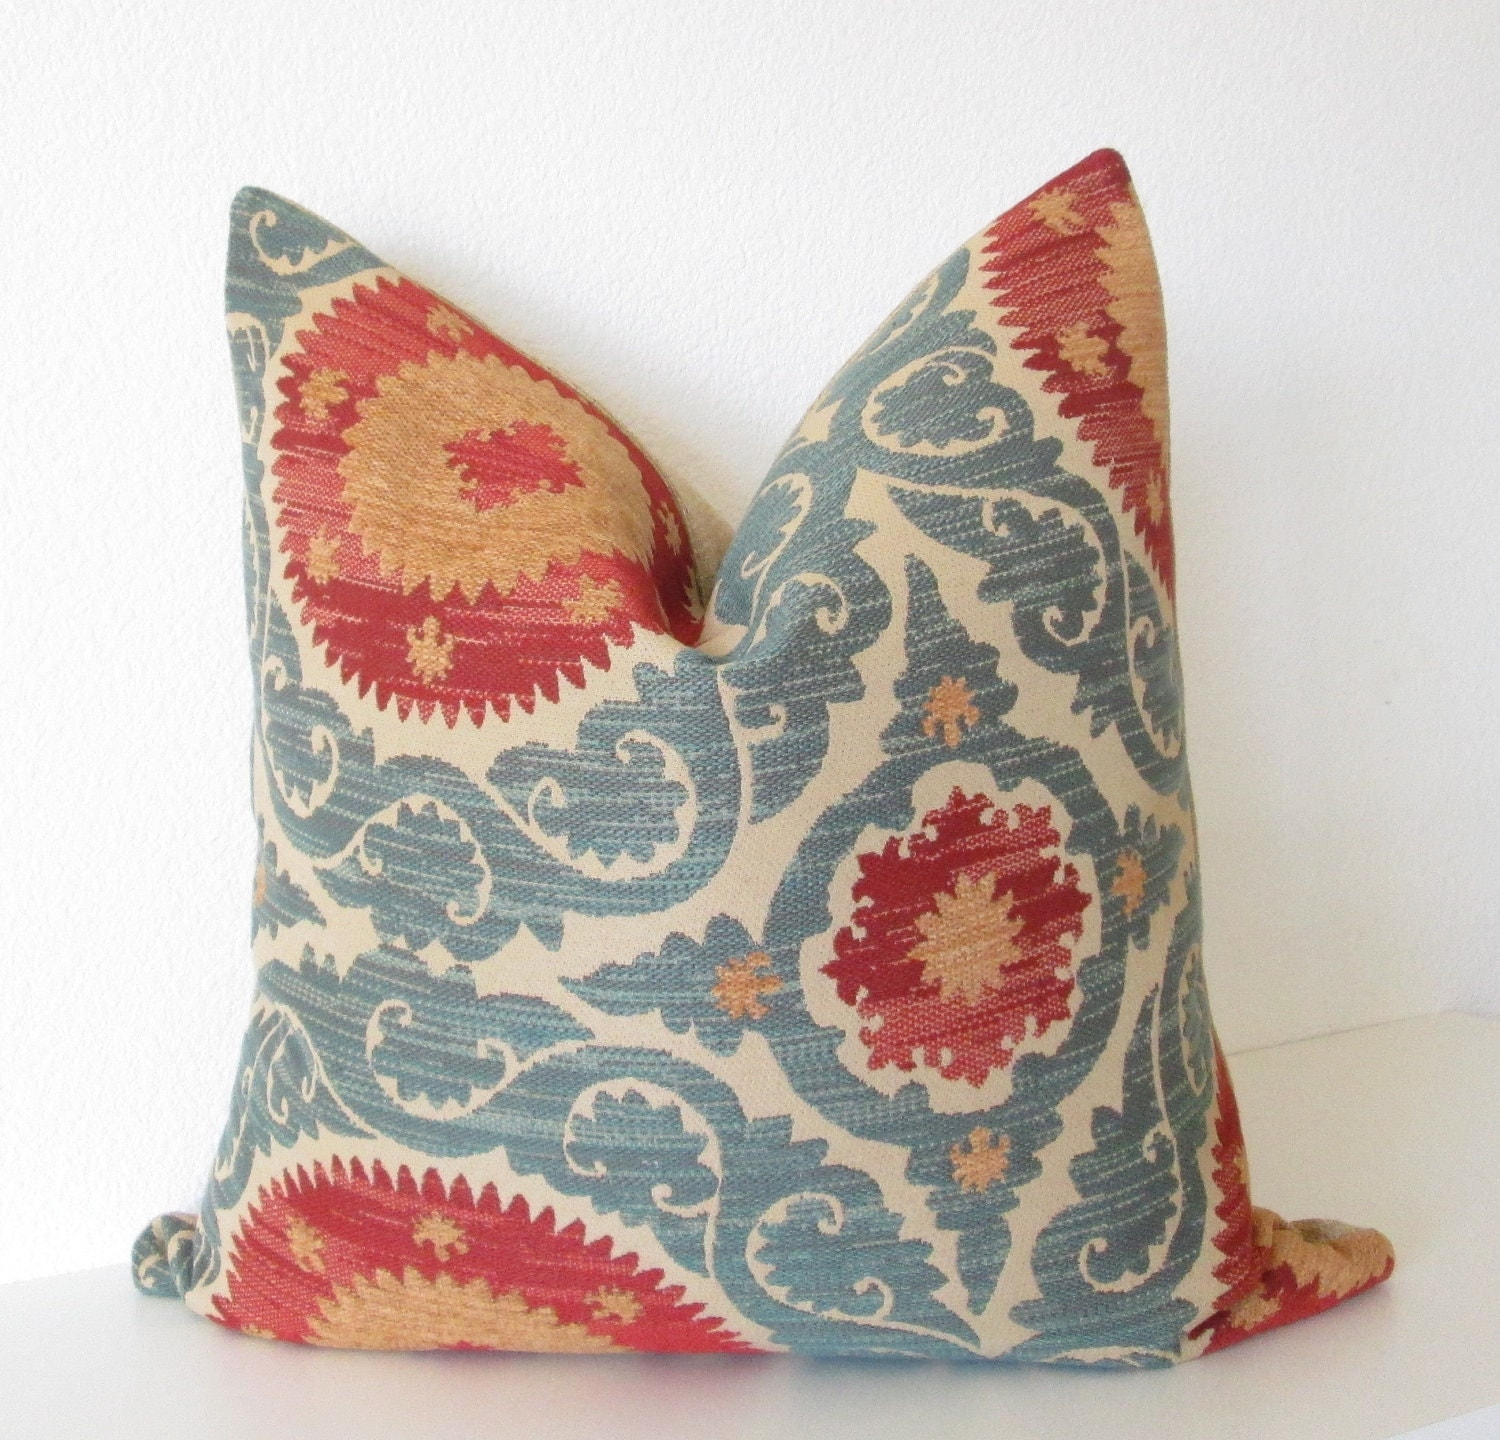 Throw Pillow Etsy : Decorative pillow cover Throw pillow Suzani pillow 20x20